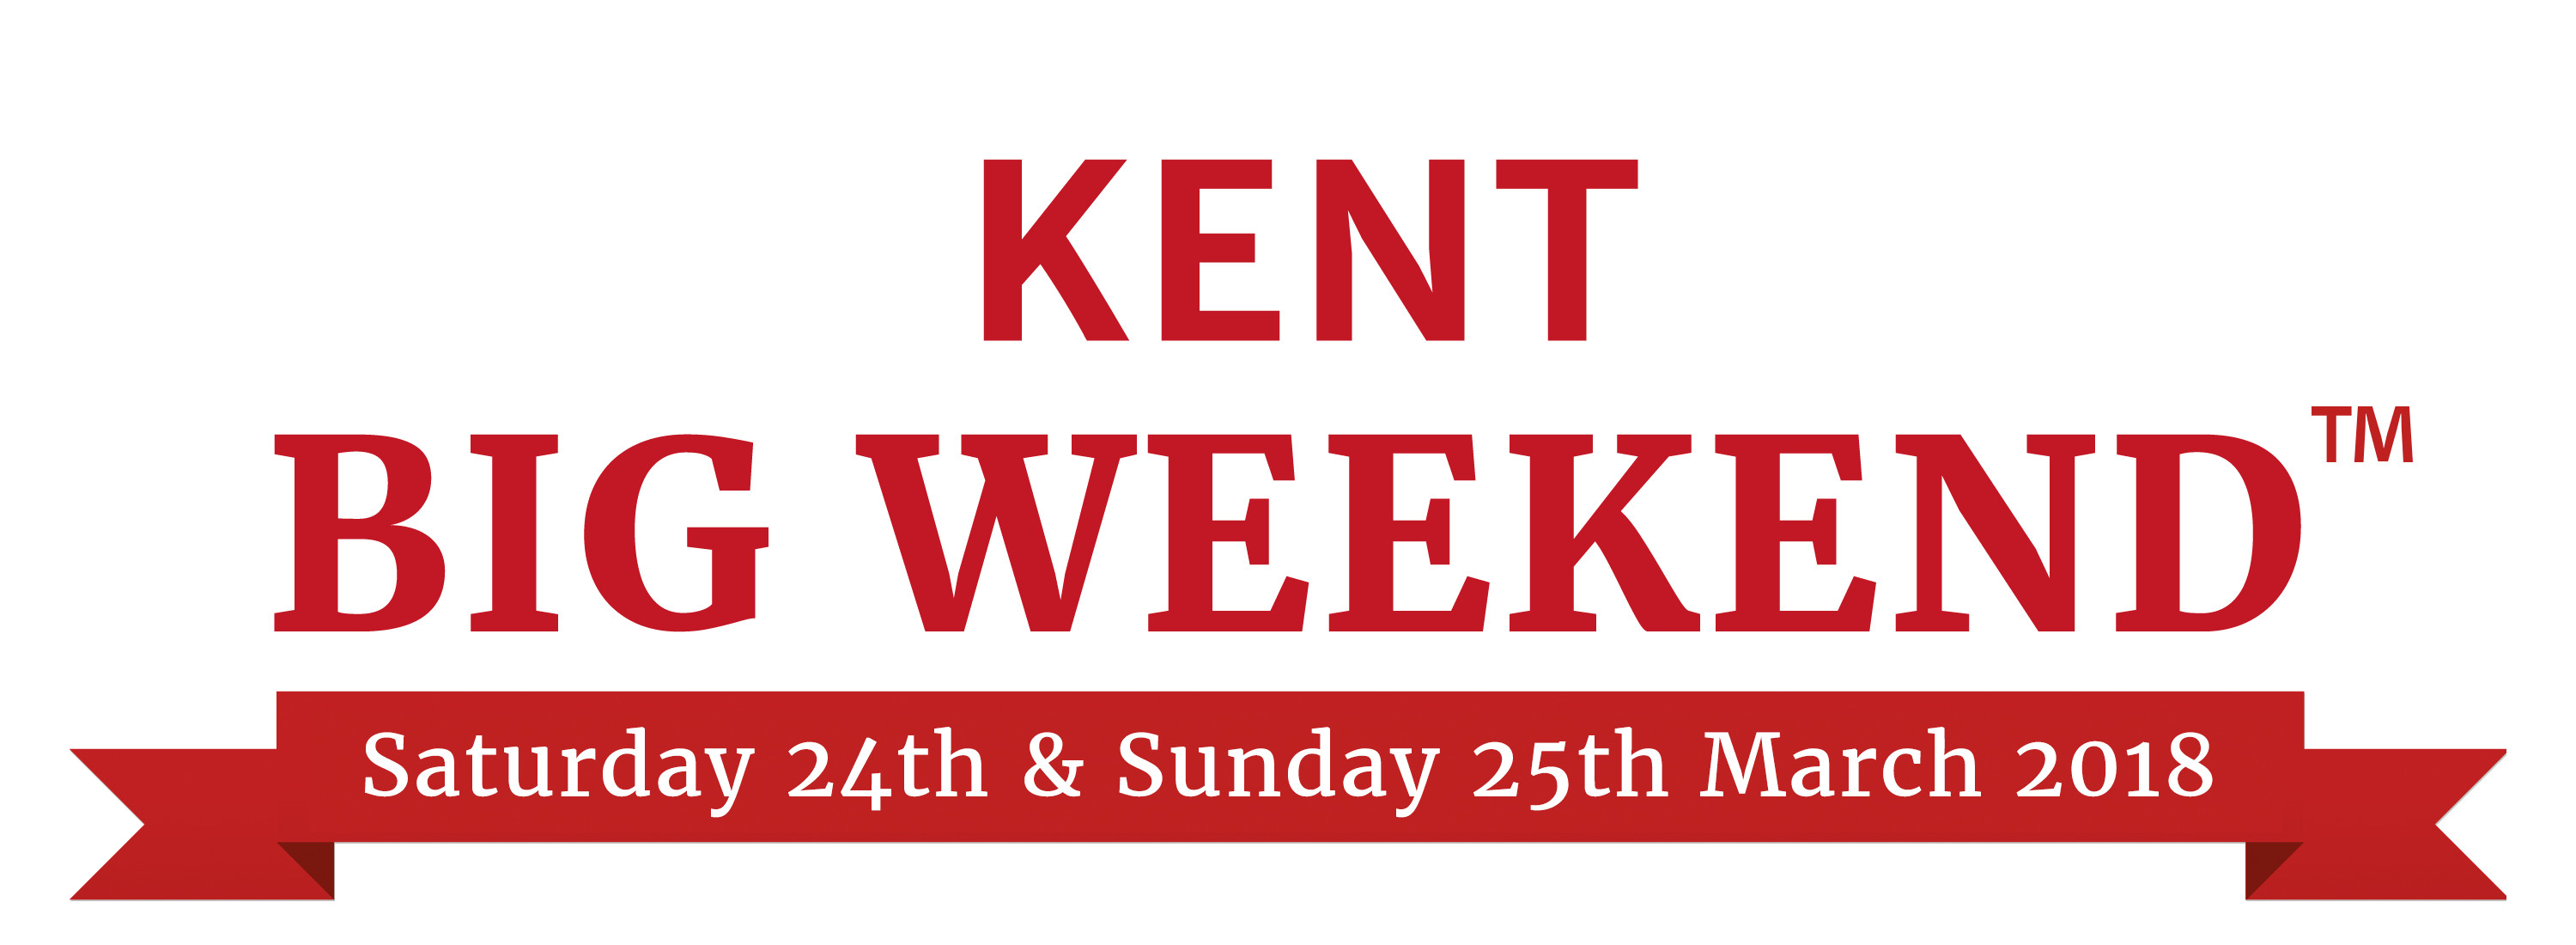 Kent big weekend2